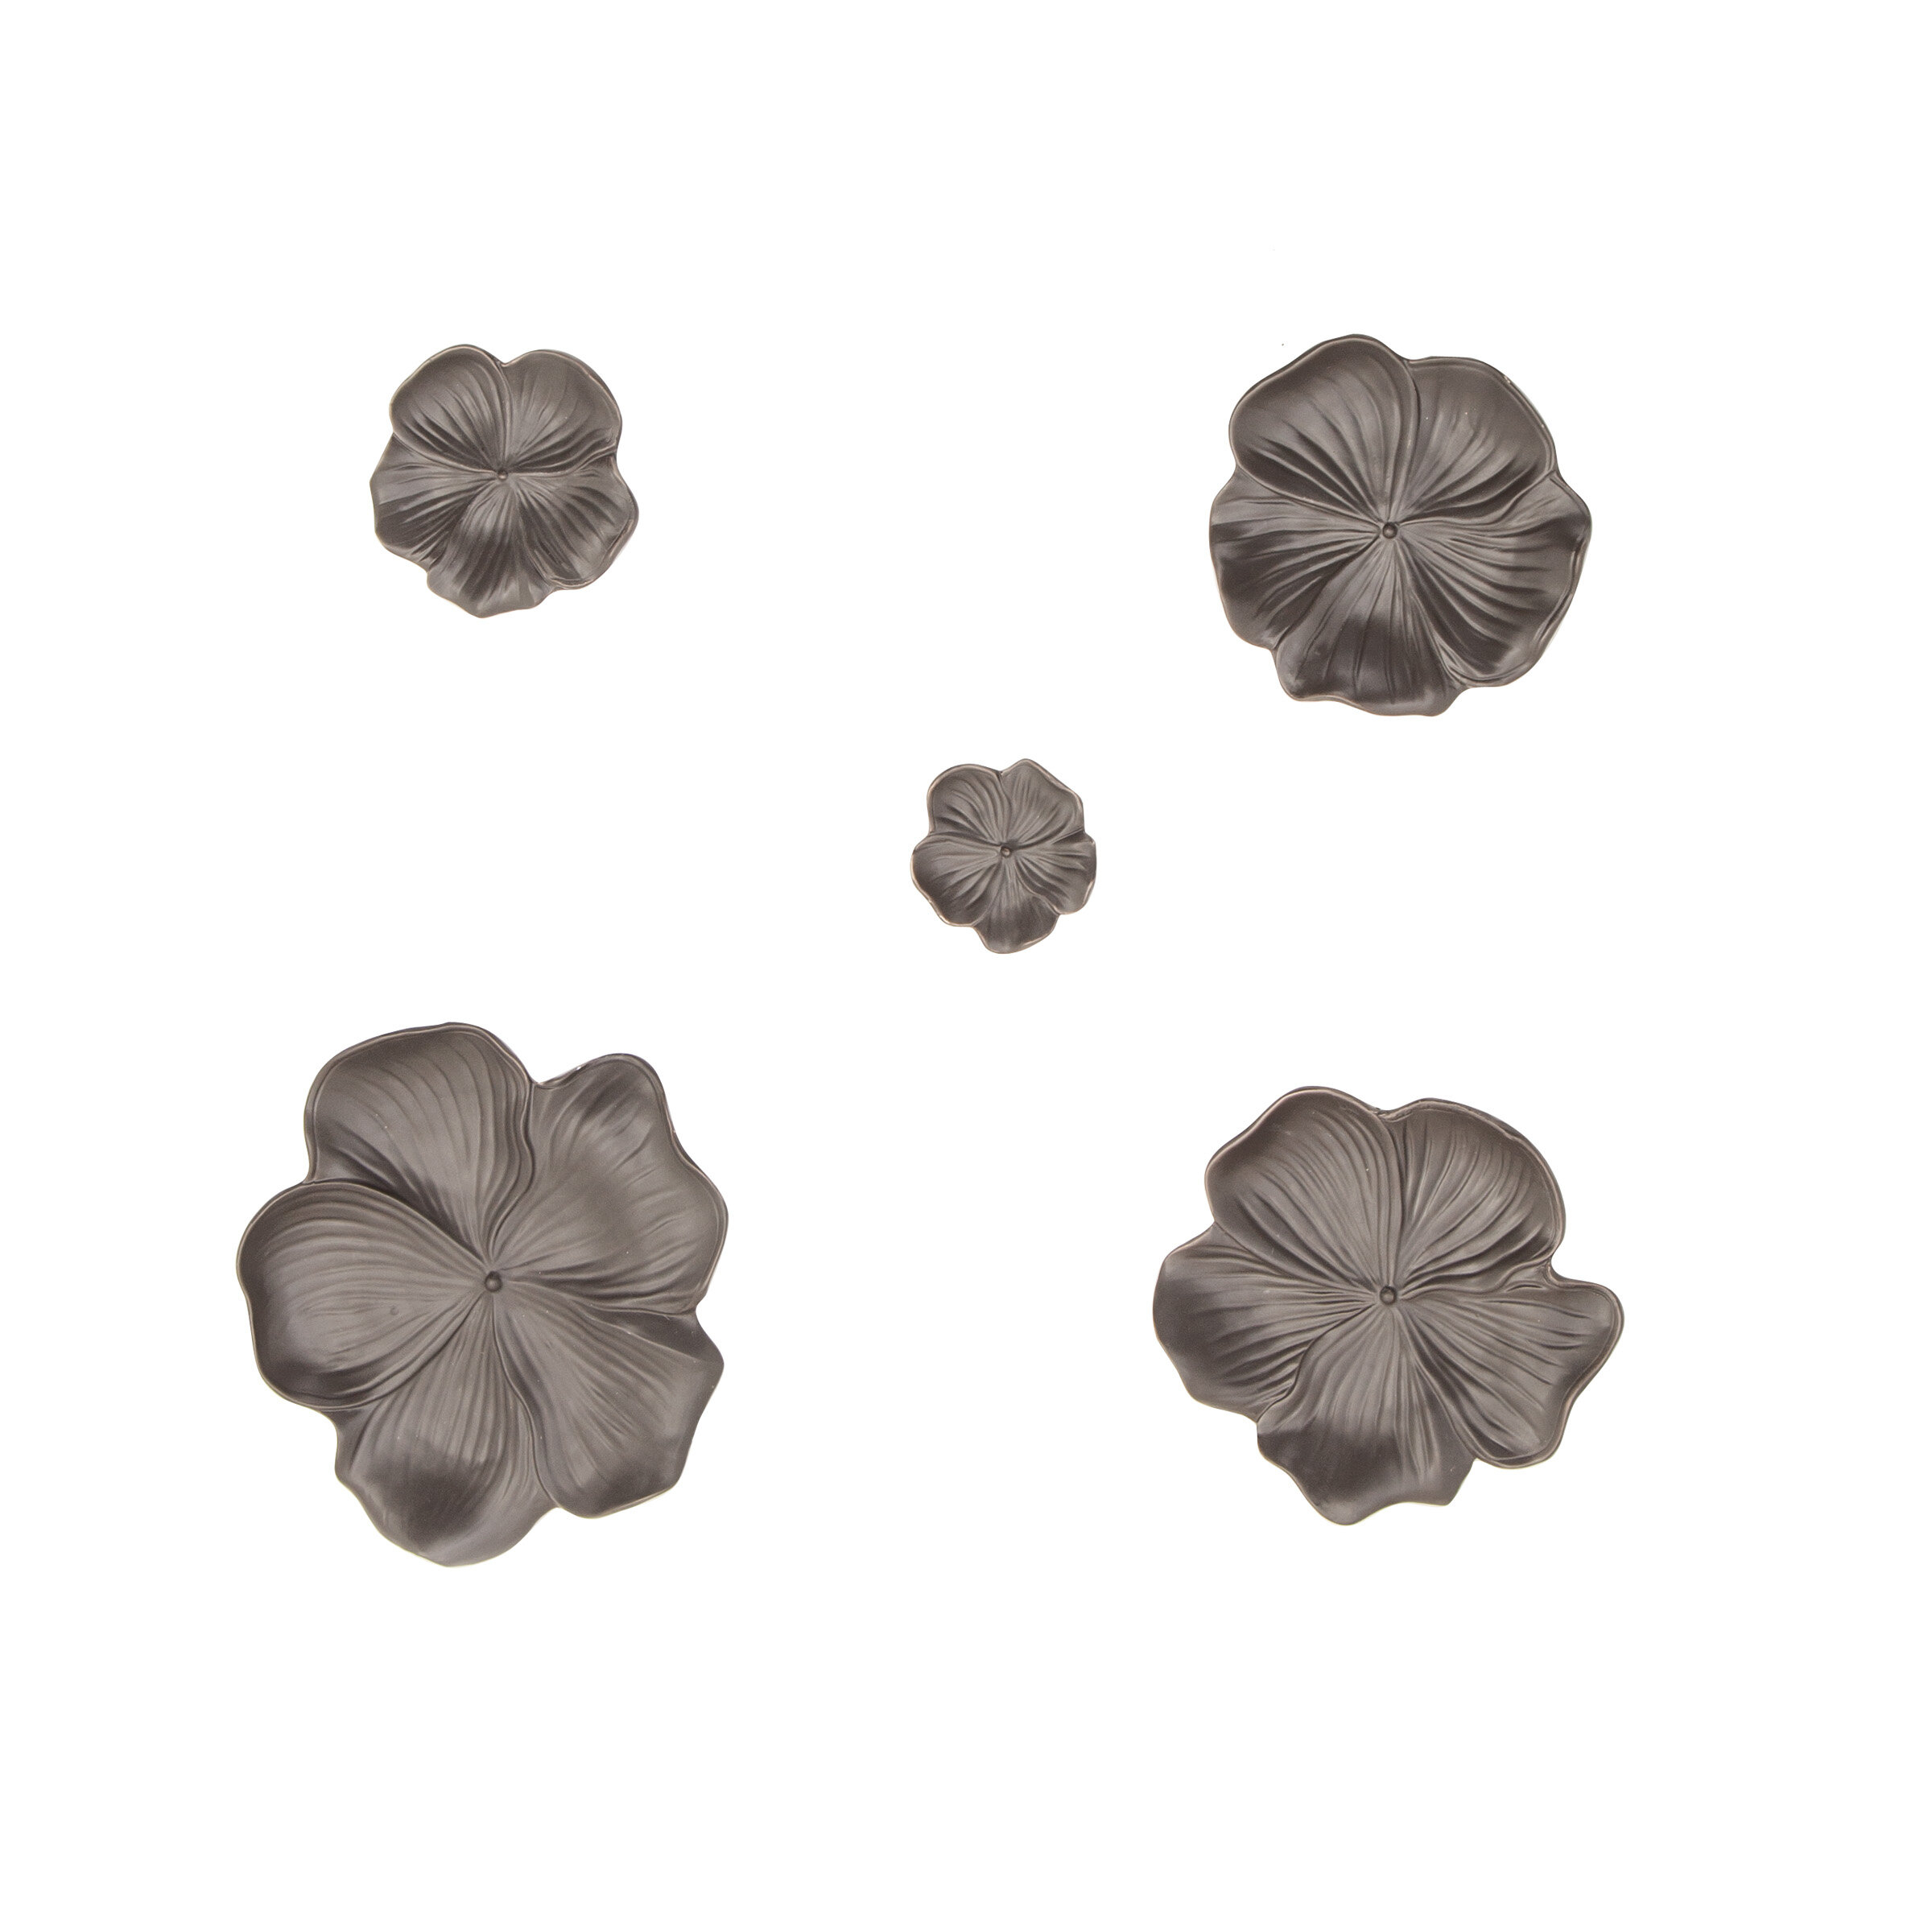 Bellefonte 5 Piece Ceramic Floral Wall Decor Set Throughout Mariposa 9 Piece Wall Decor (View 6 of 30)